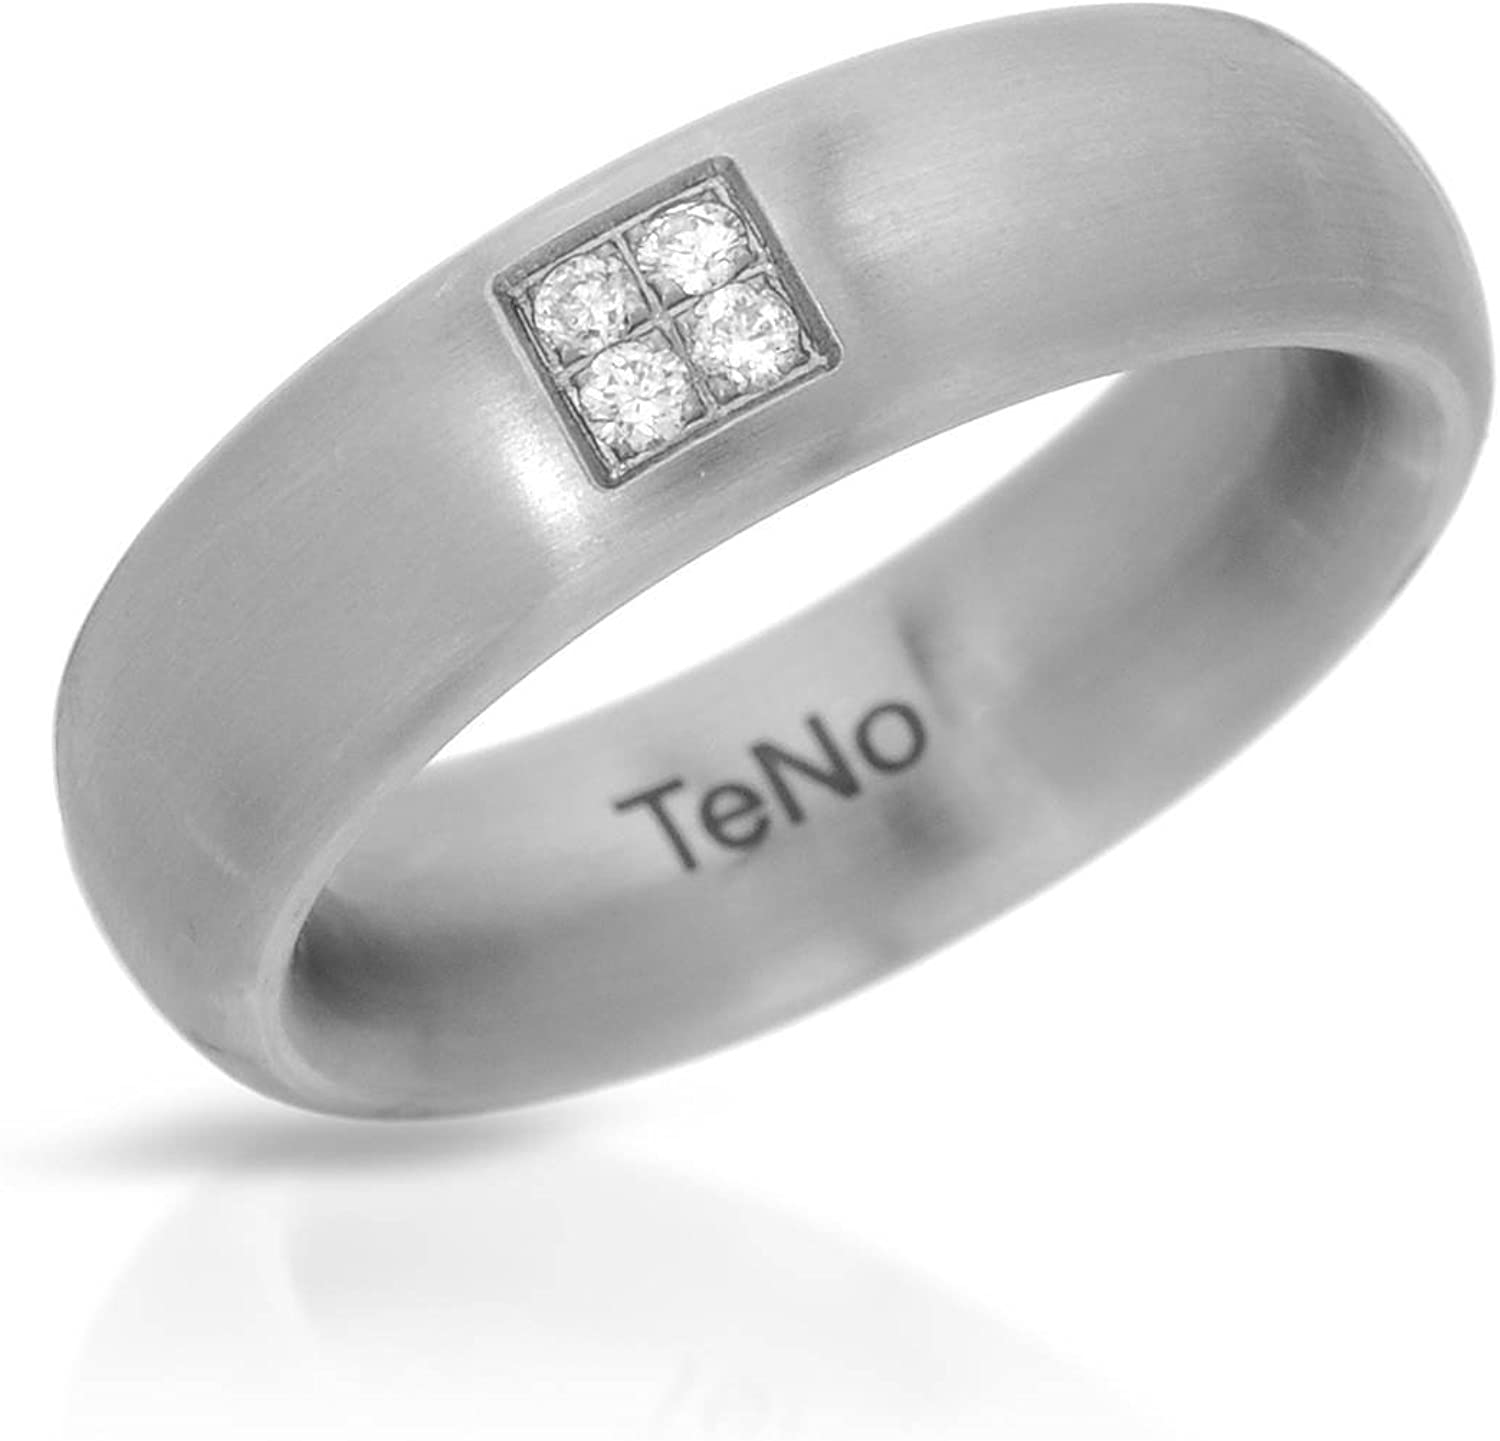 Teno Stainless Steel 0.08 CTW Color F, VS1 Diamond Band Ring.